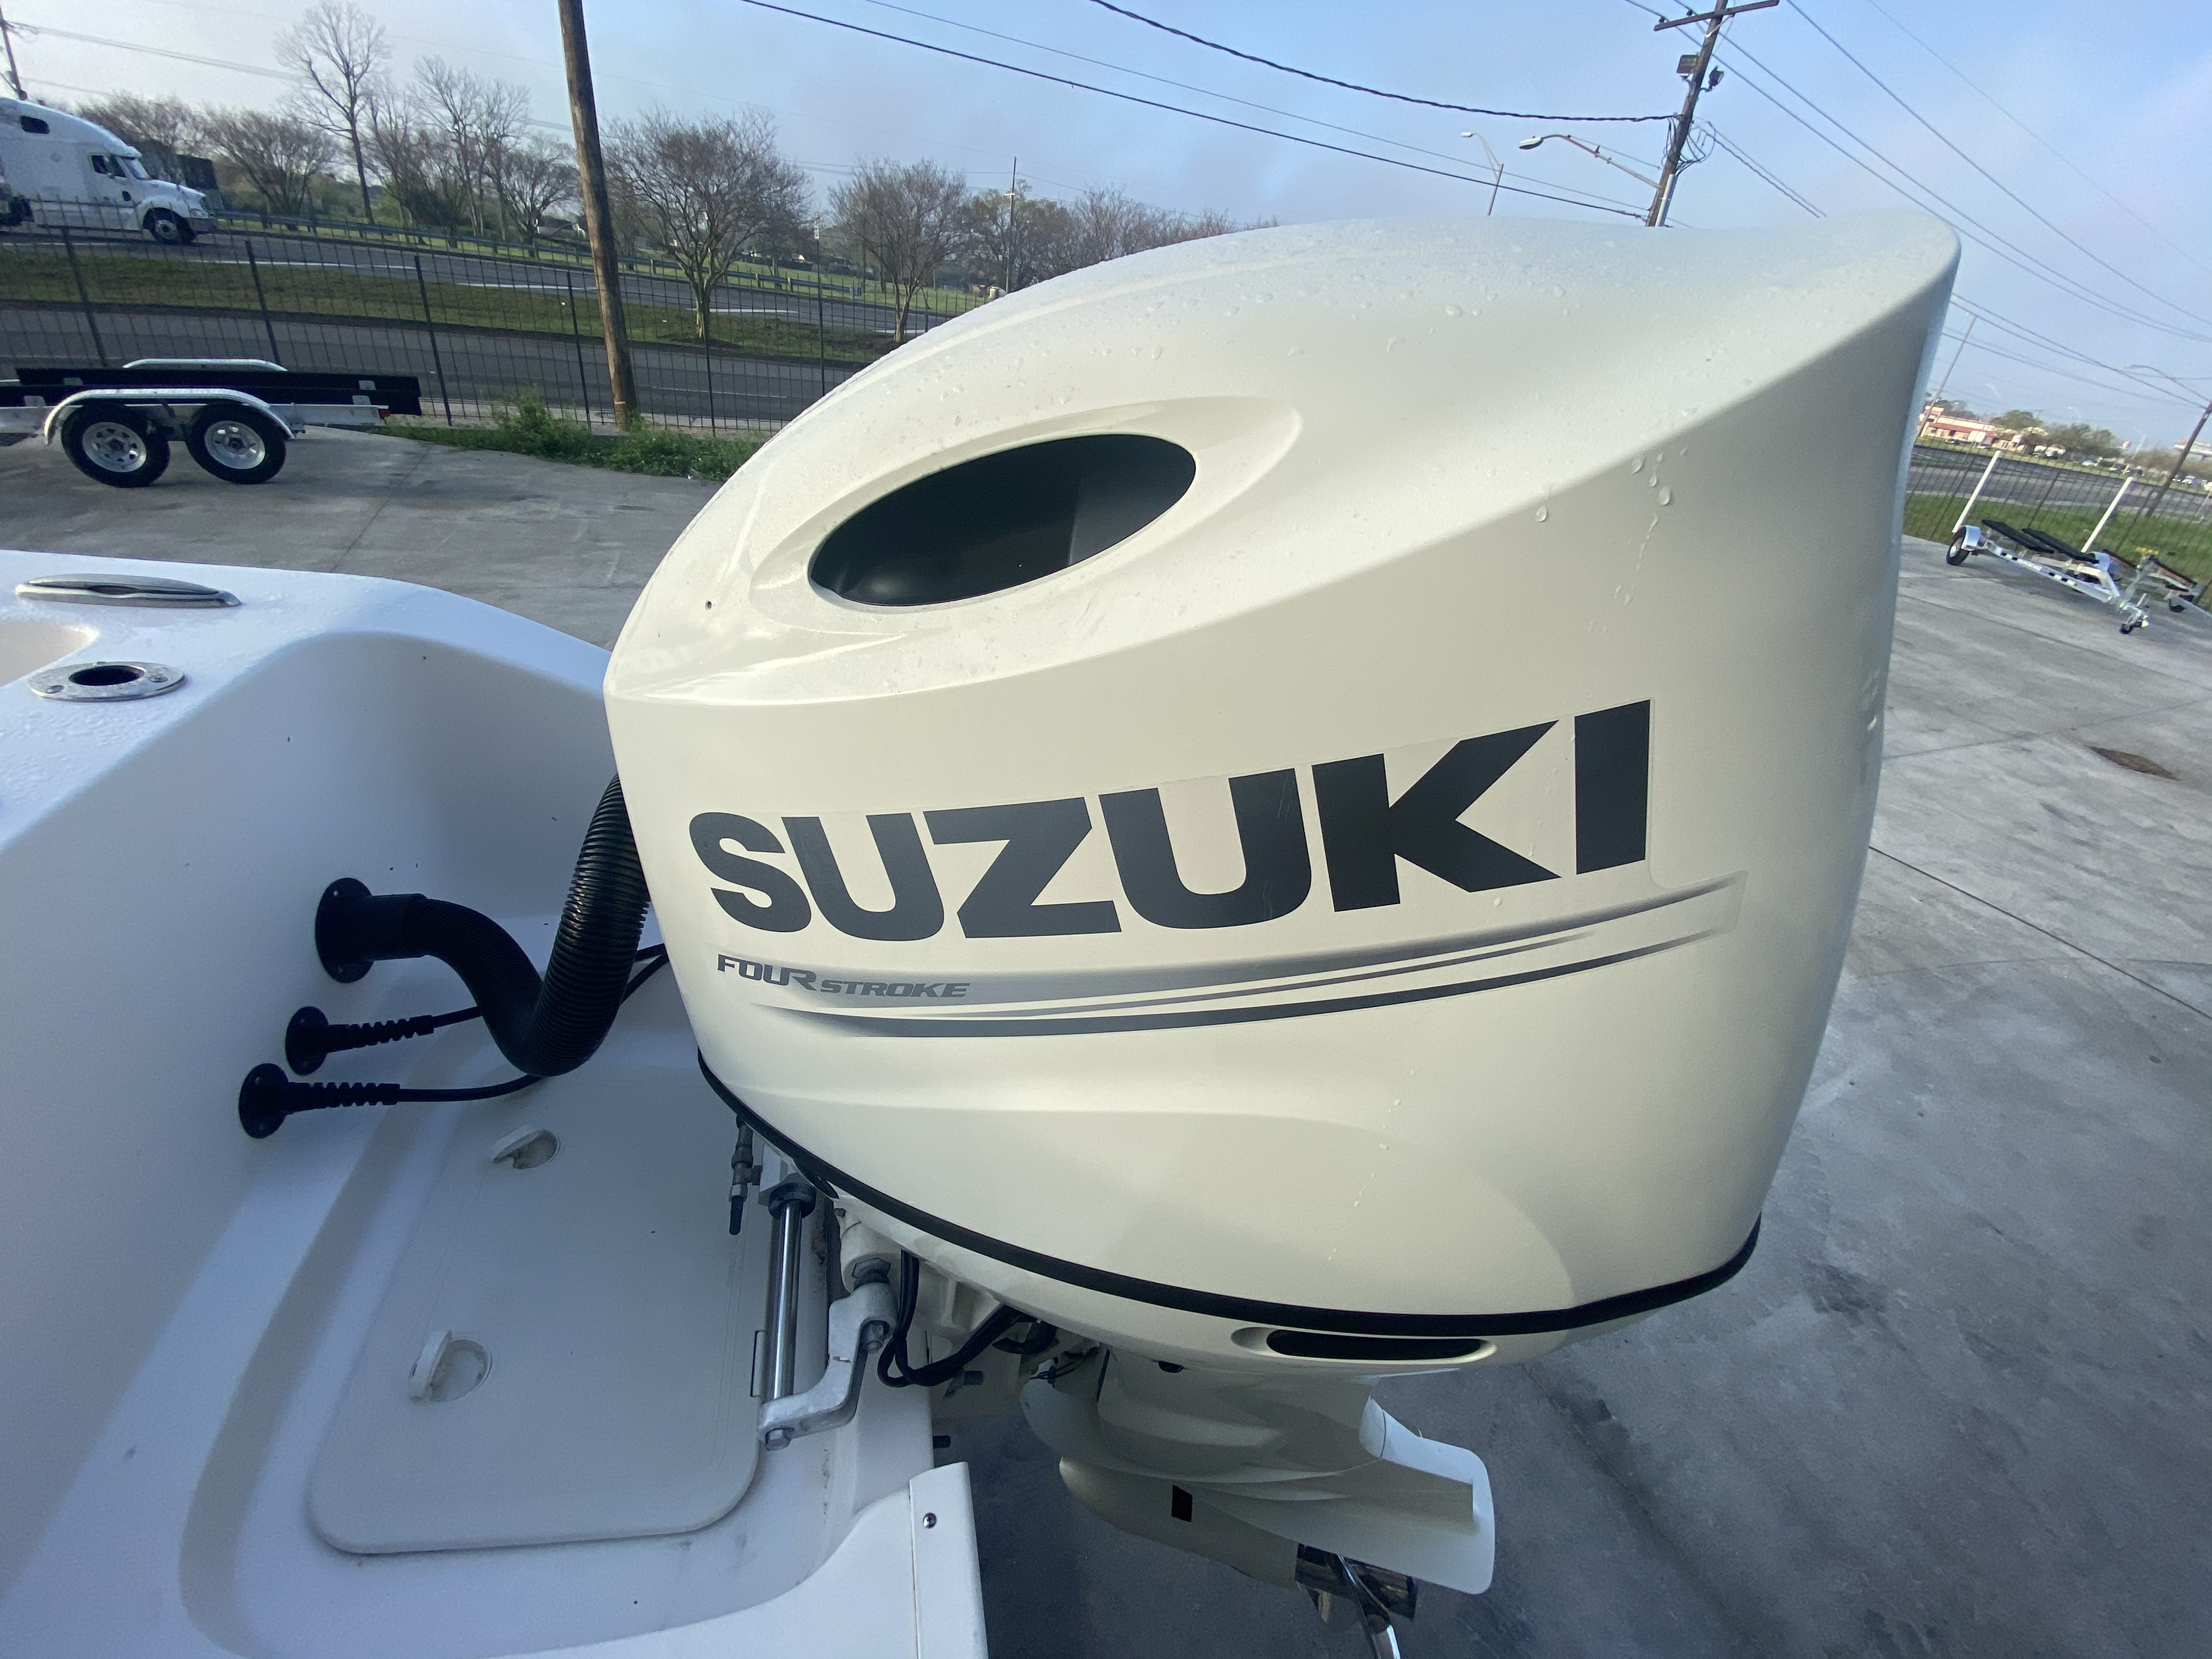 2020 Twin Vee boat for sale, model of the boat is 26 Pro & Image # 7 of 24